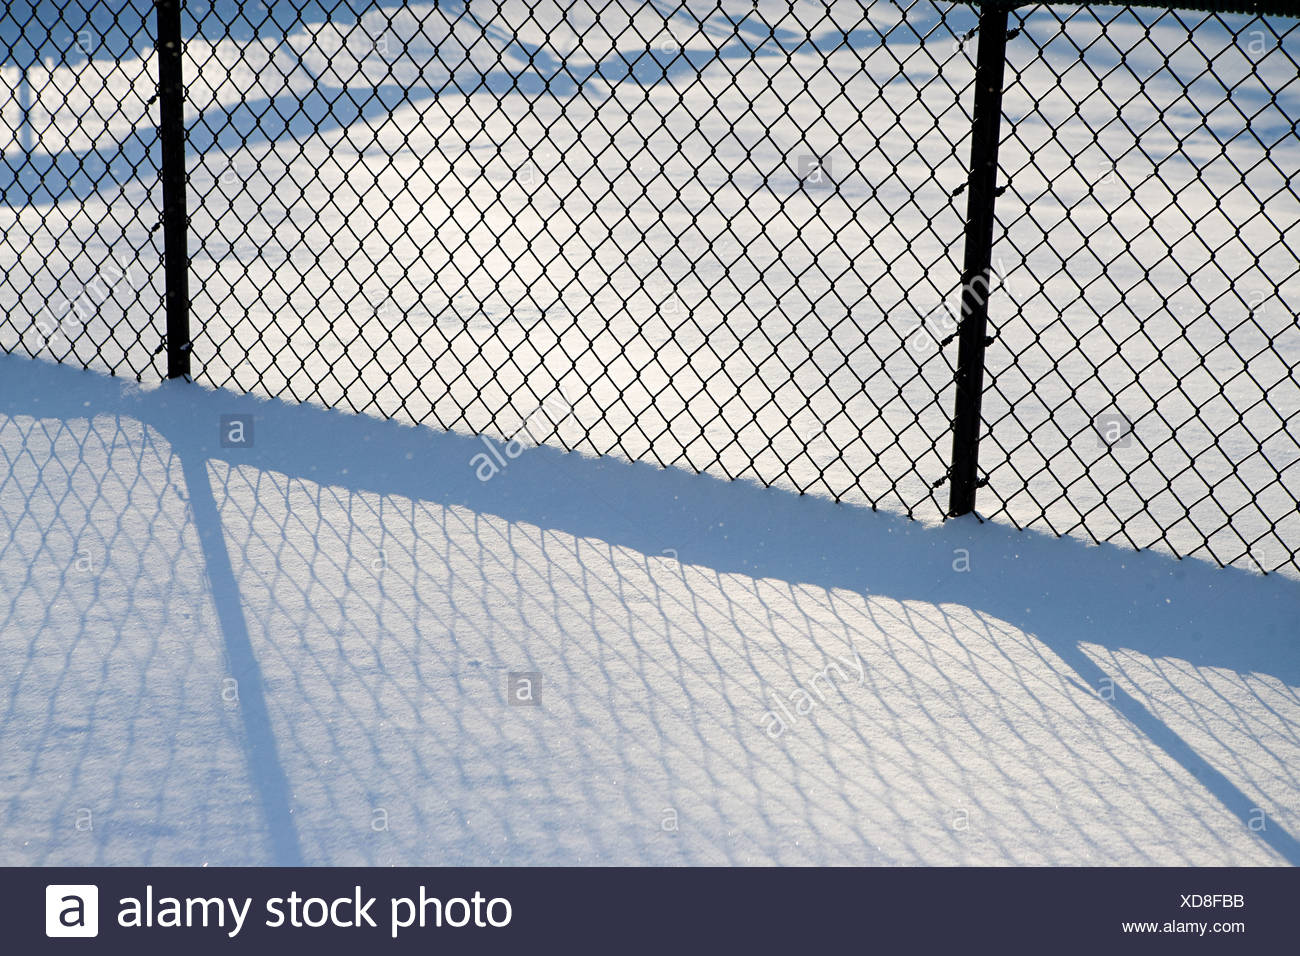 Wire mesh fence in snow, abstract Stock Photo: 283544111 - Alamy